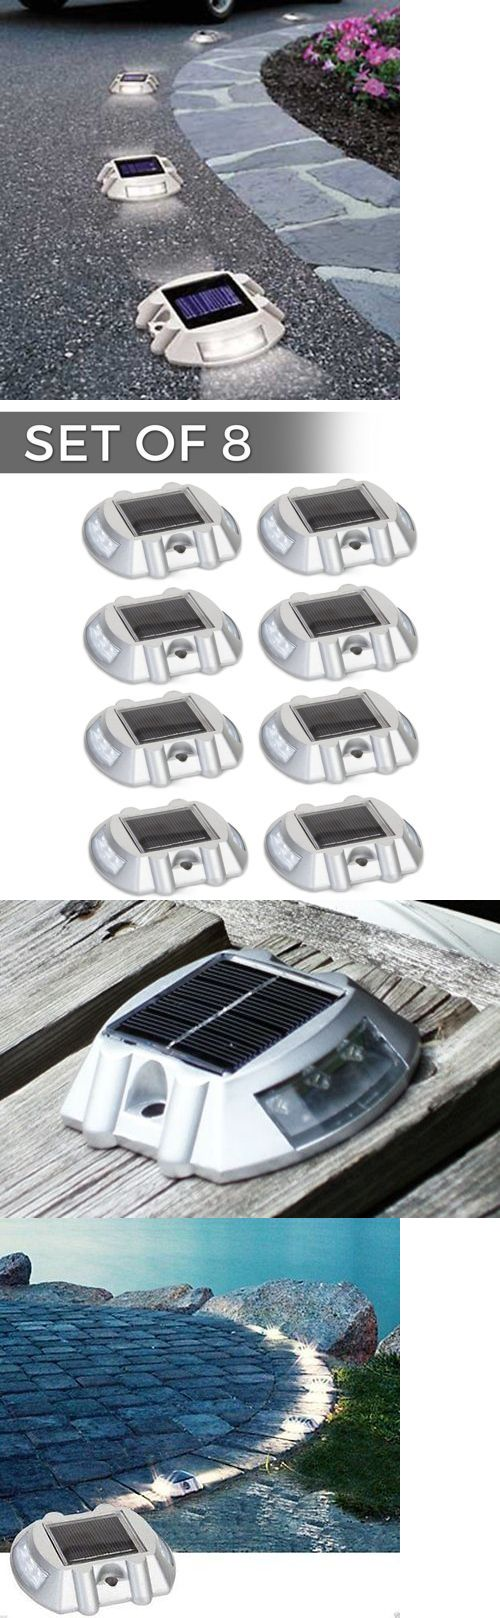 Solar power round recessed deck dock pathway garden led light ebay - Landscape And Walkway Lights 94940 8 Pack Solar Led Markers For Pathway Driveway Lights Dock